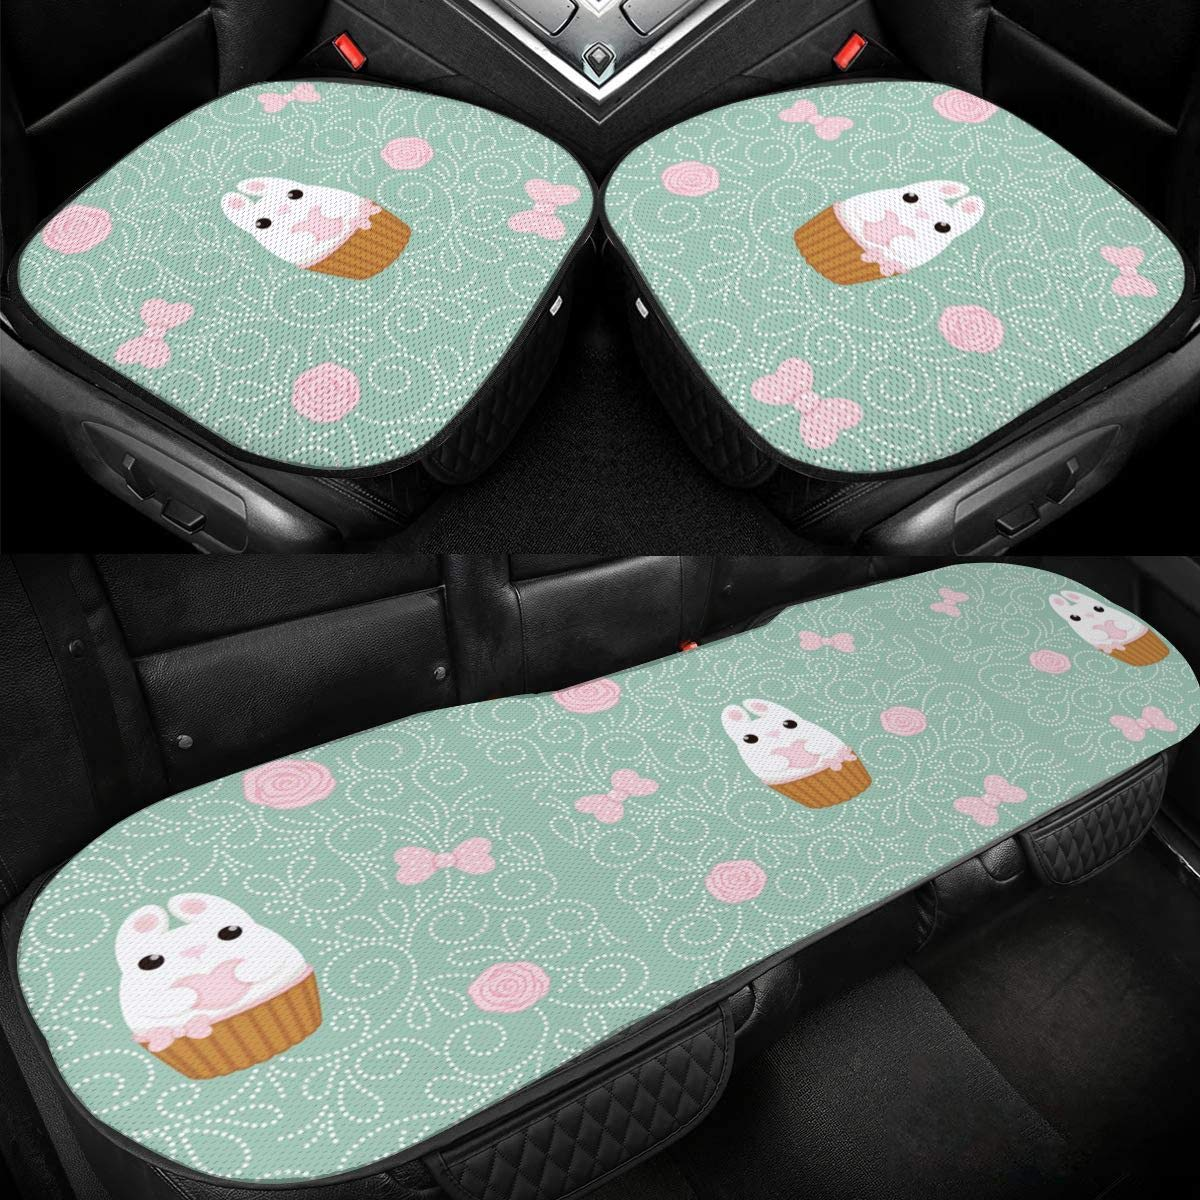 A Rabbit Hold A Heart Car Ice Silk Seat Cushion Pad 3 Pieces Sets Comfort Seat Protector for Car Driver Seat Office Chair Home Use Seat Cushion